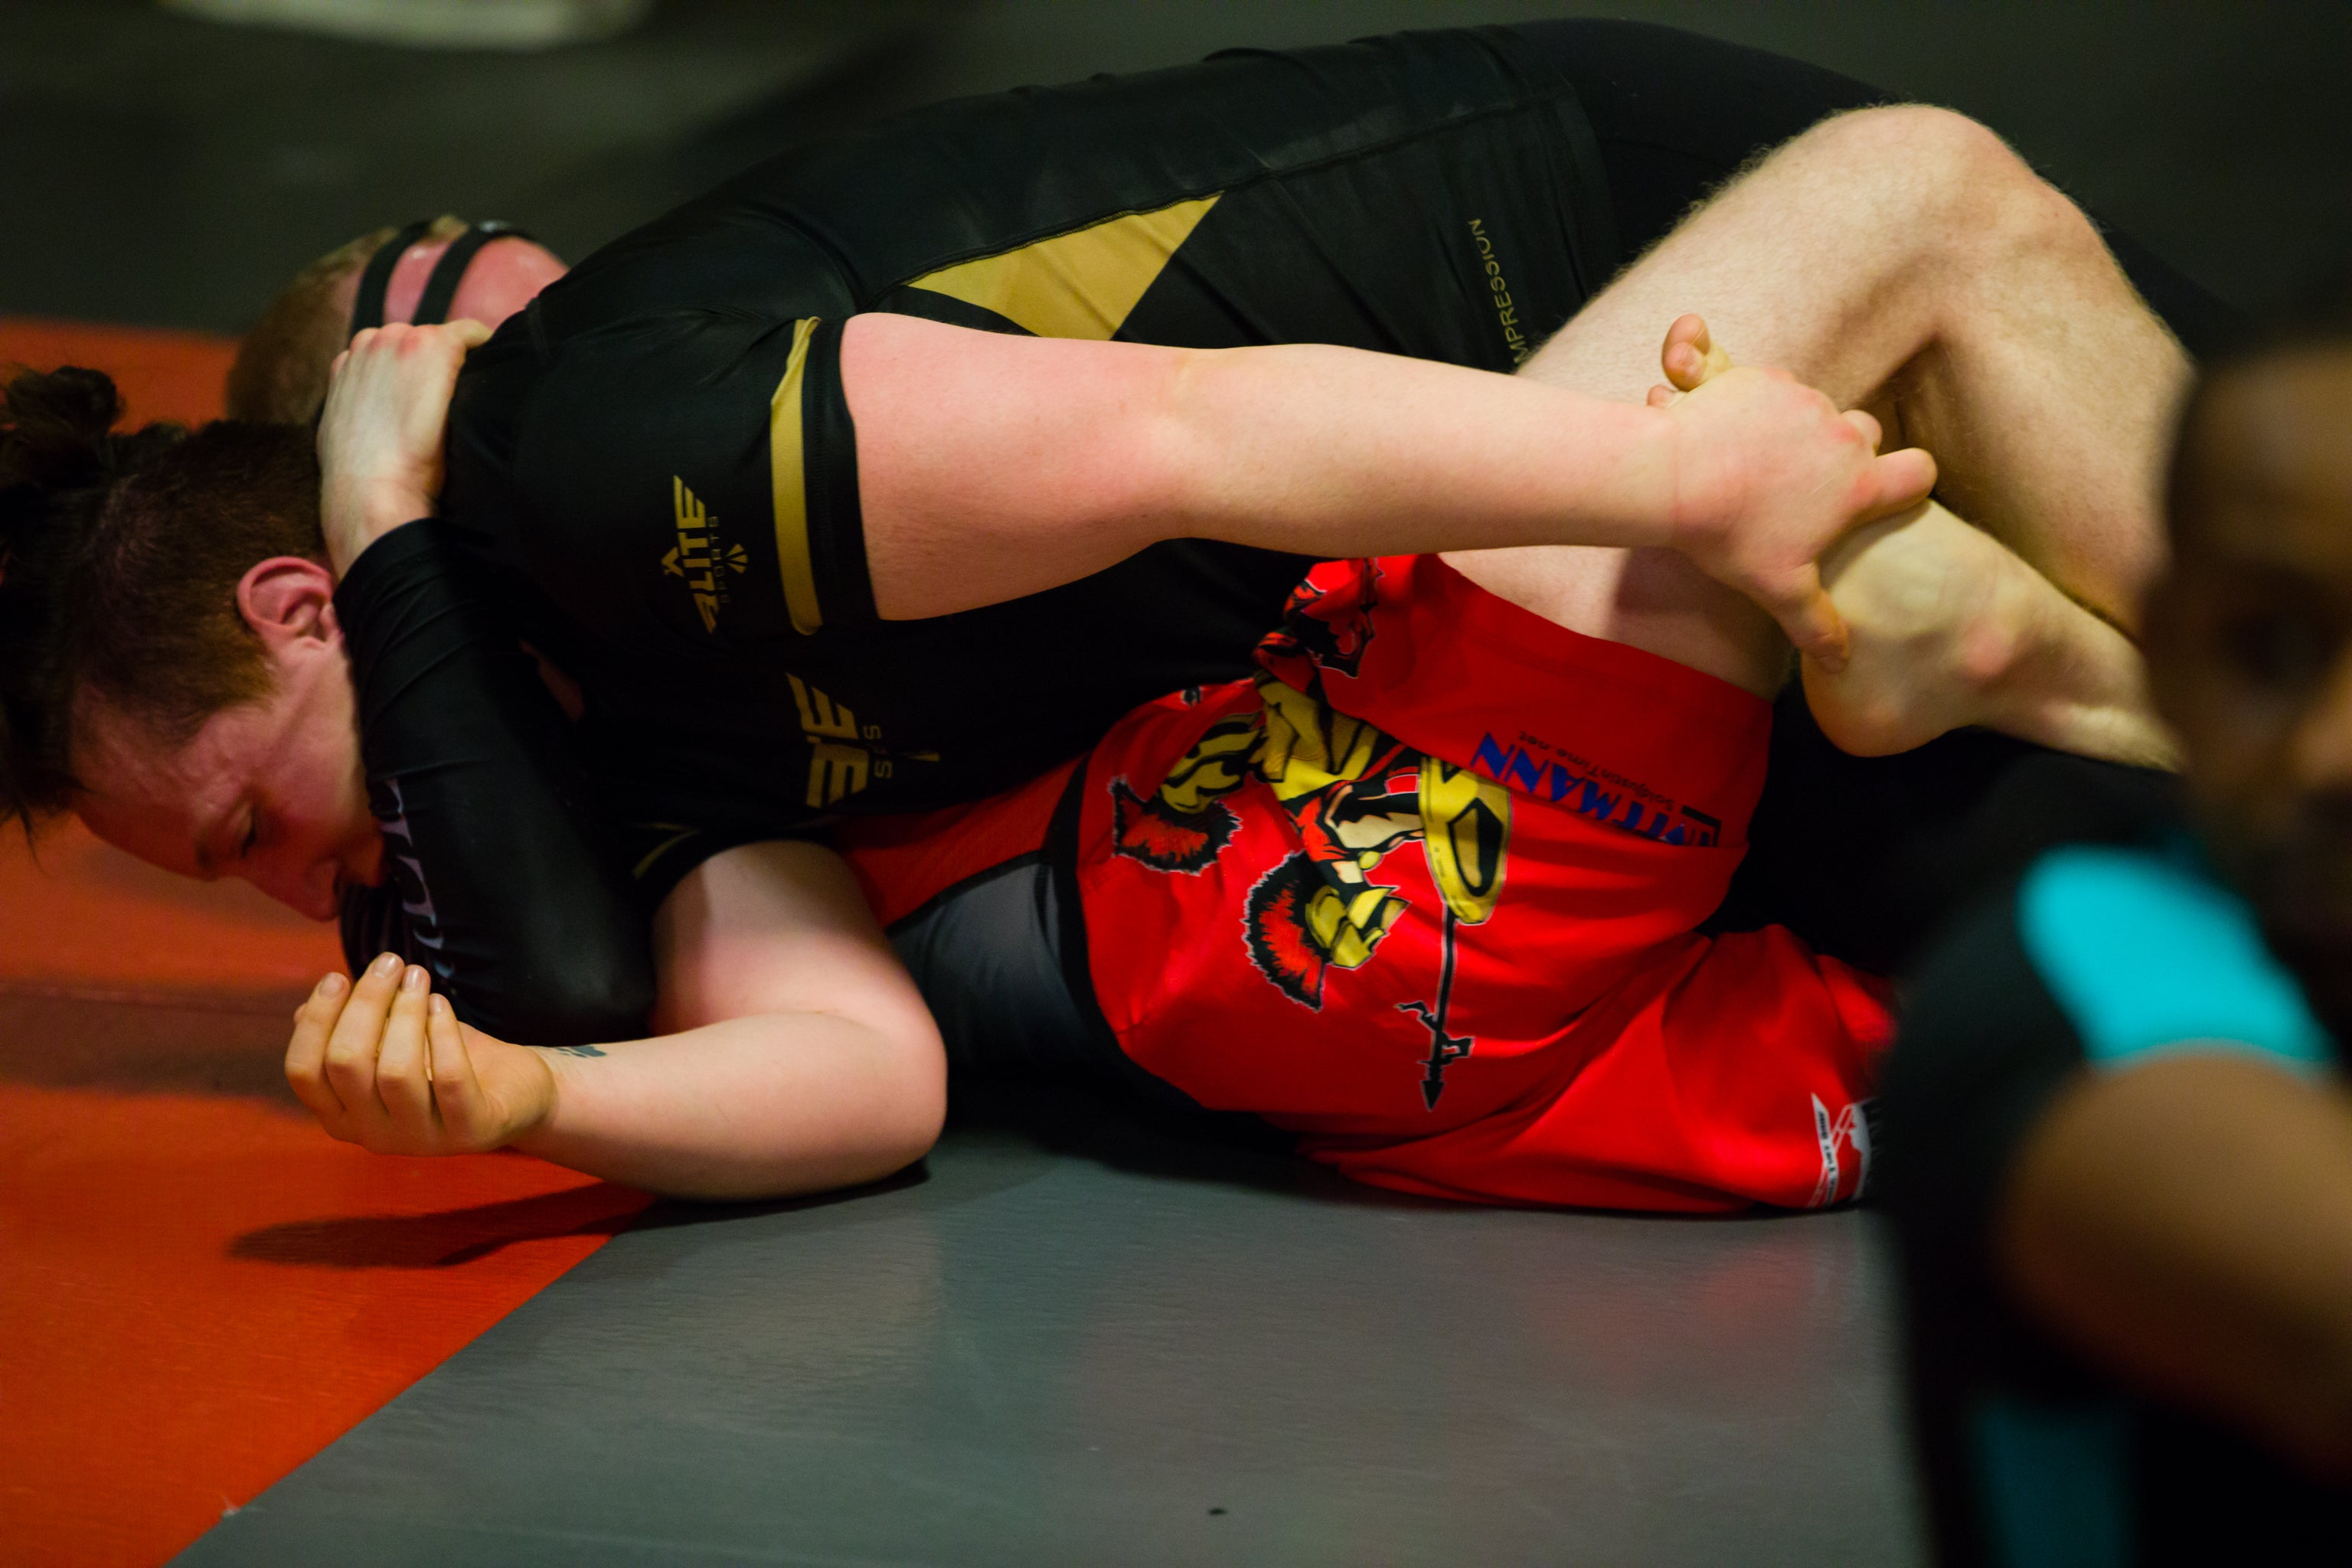 Elite Sports Team Elite Bjj Fighter Jessica Michelle Sunier Image12